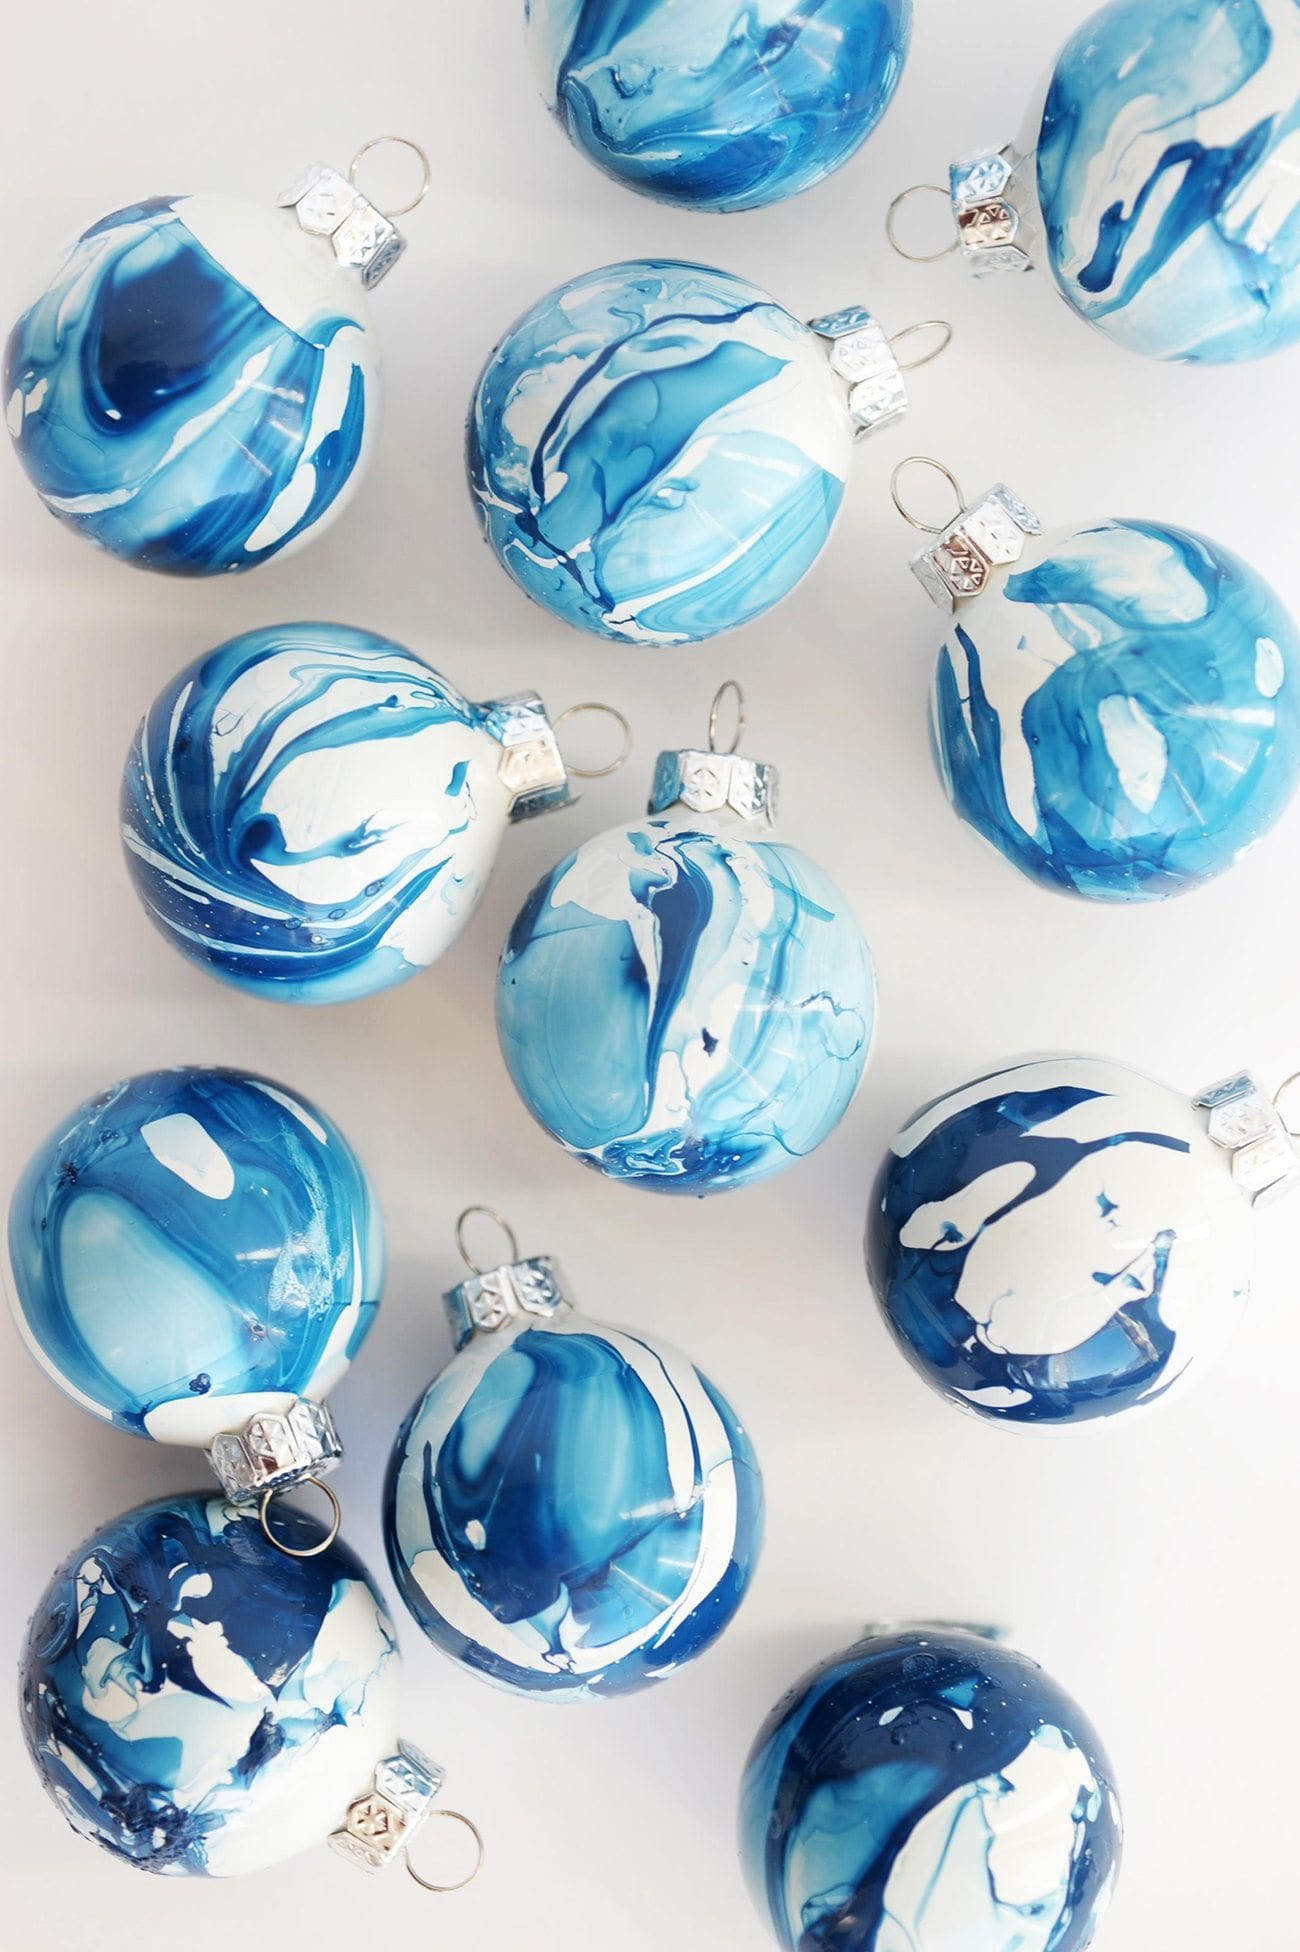 10 gorgeous homemade ornaments you can make with simple glass diy indigo marbled ornaments easy glass ornament craft ideas from cydconverse solutioingenieria Gallery